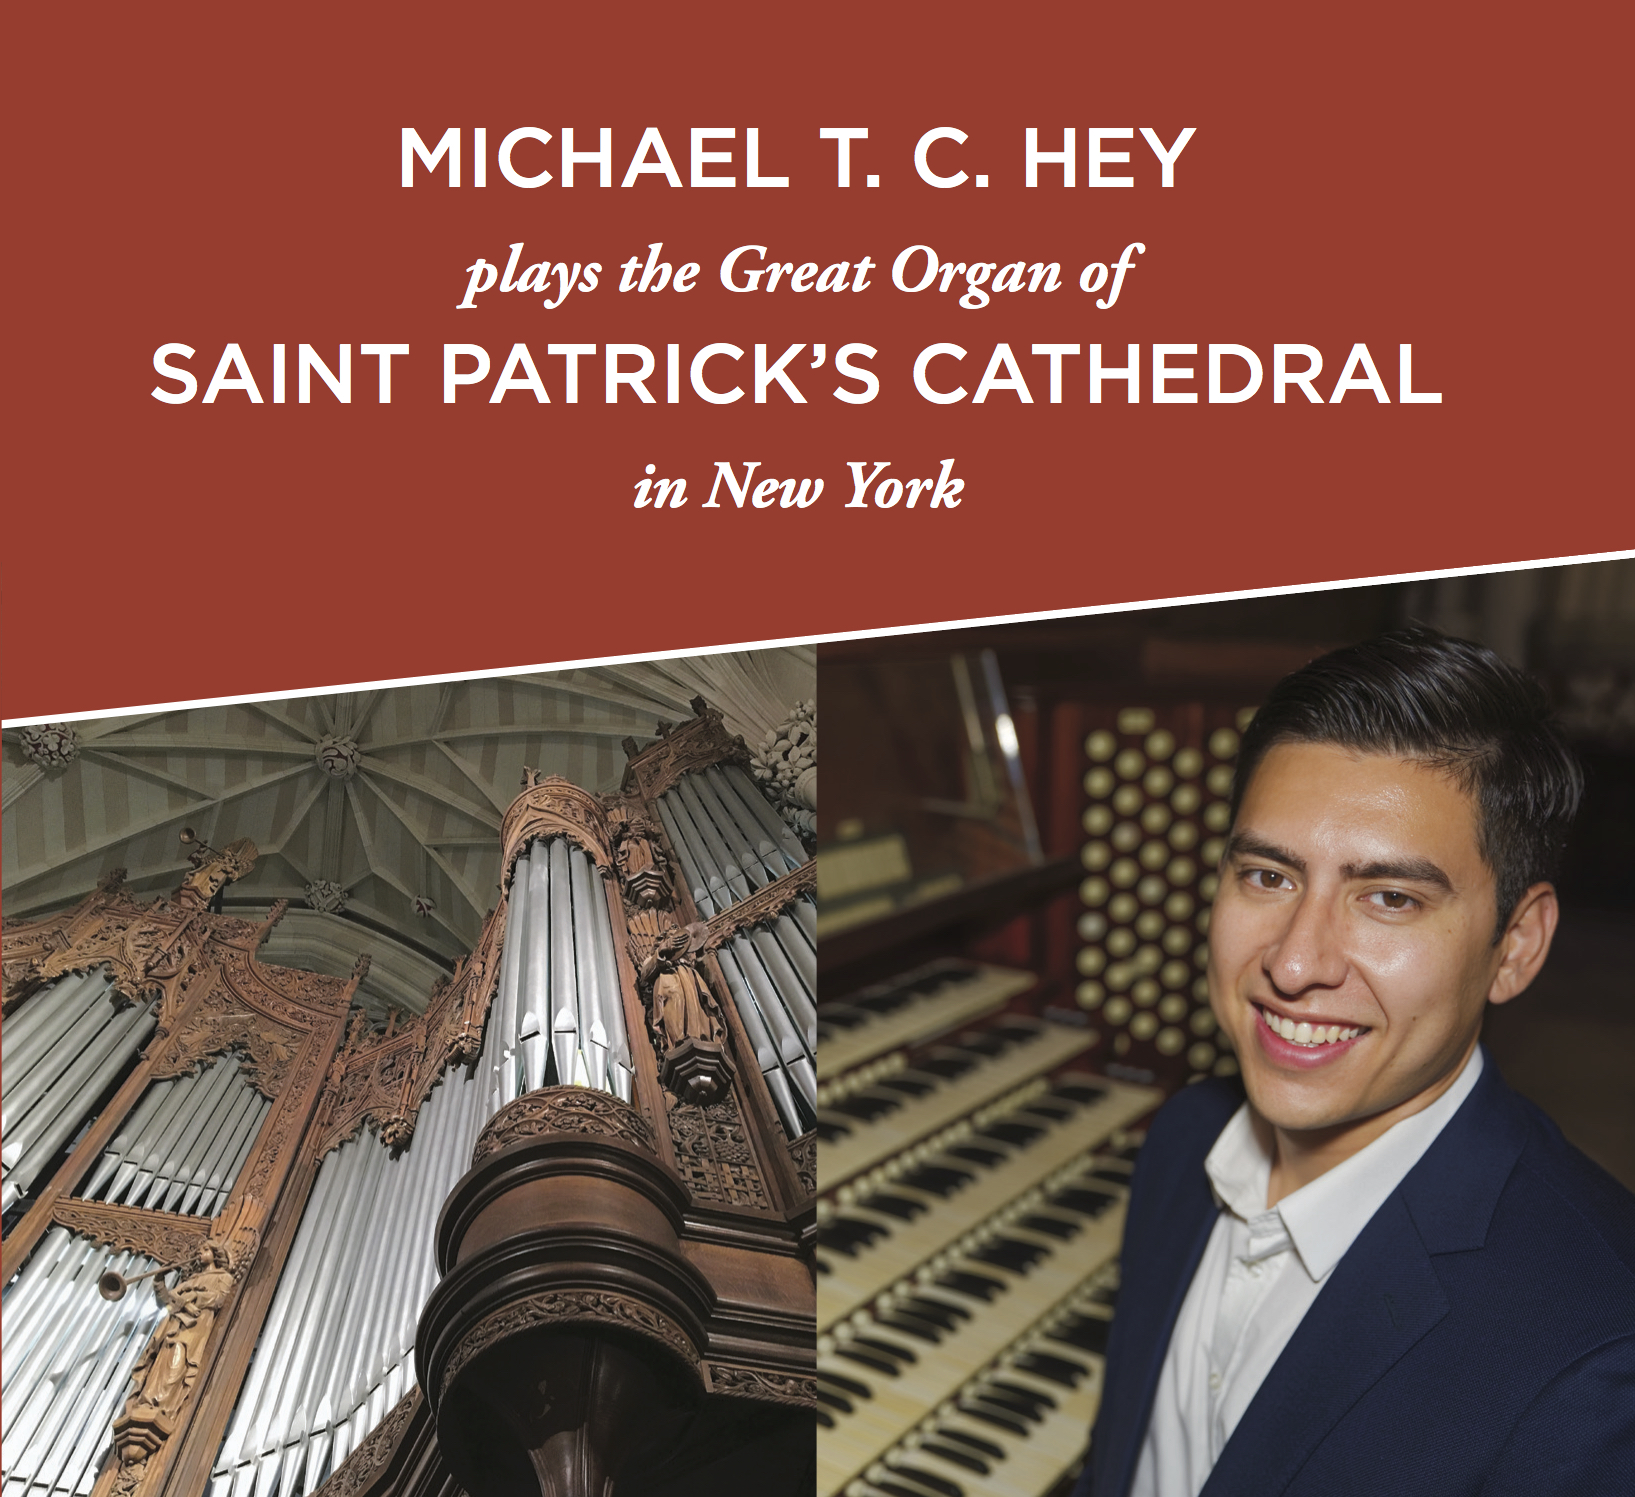 Michael T. C. Hey plays at Saint Patrick's Cathedral